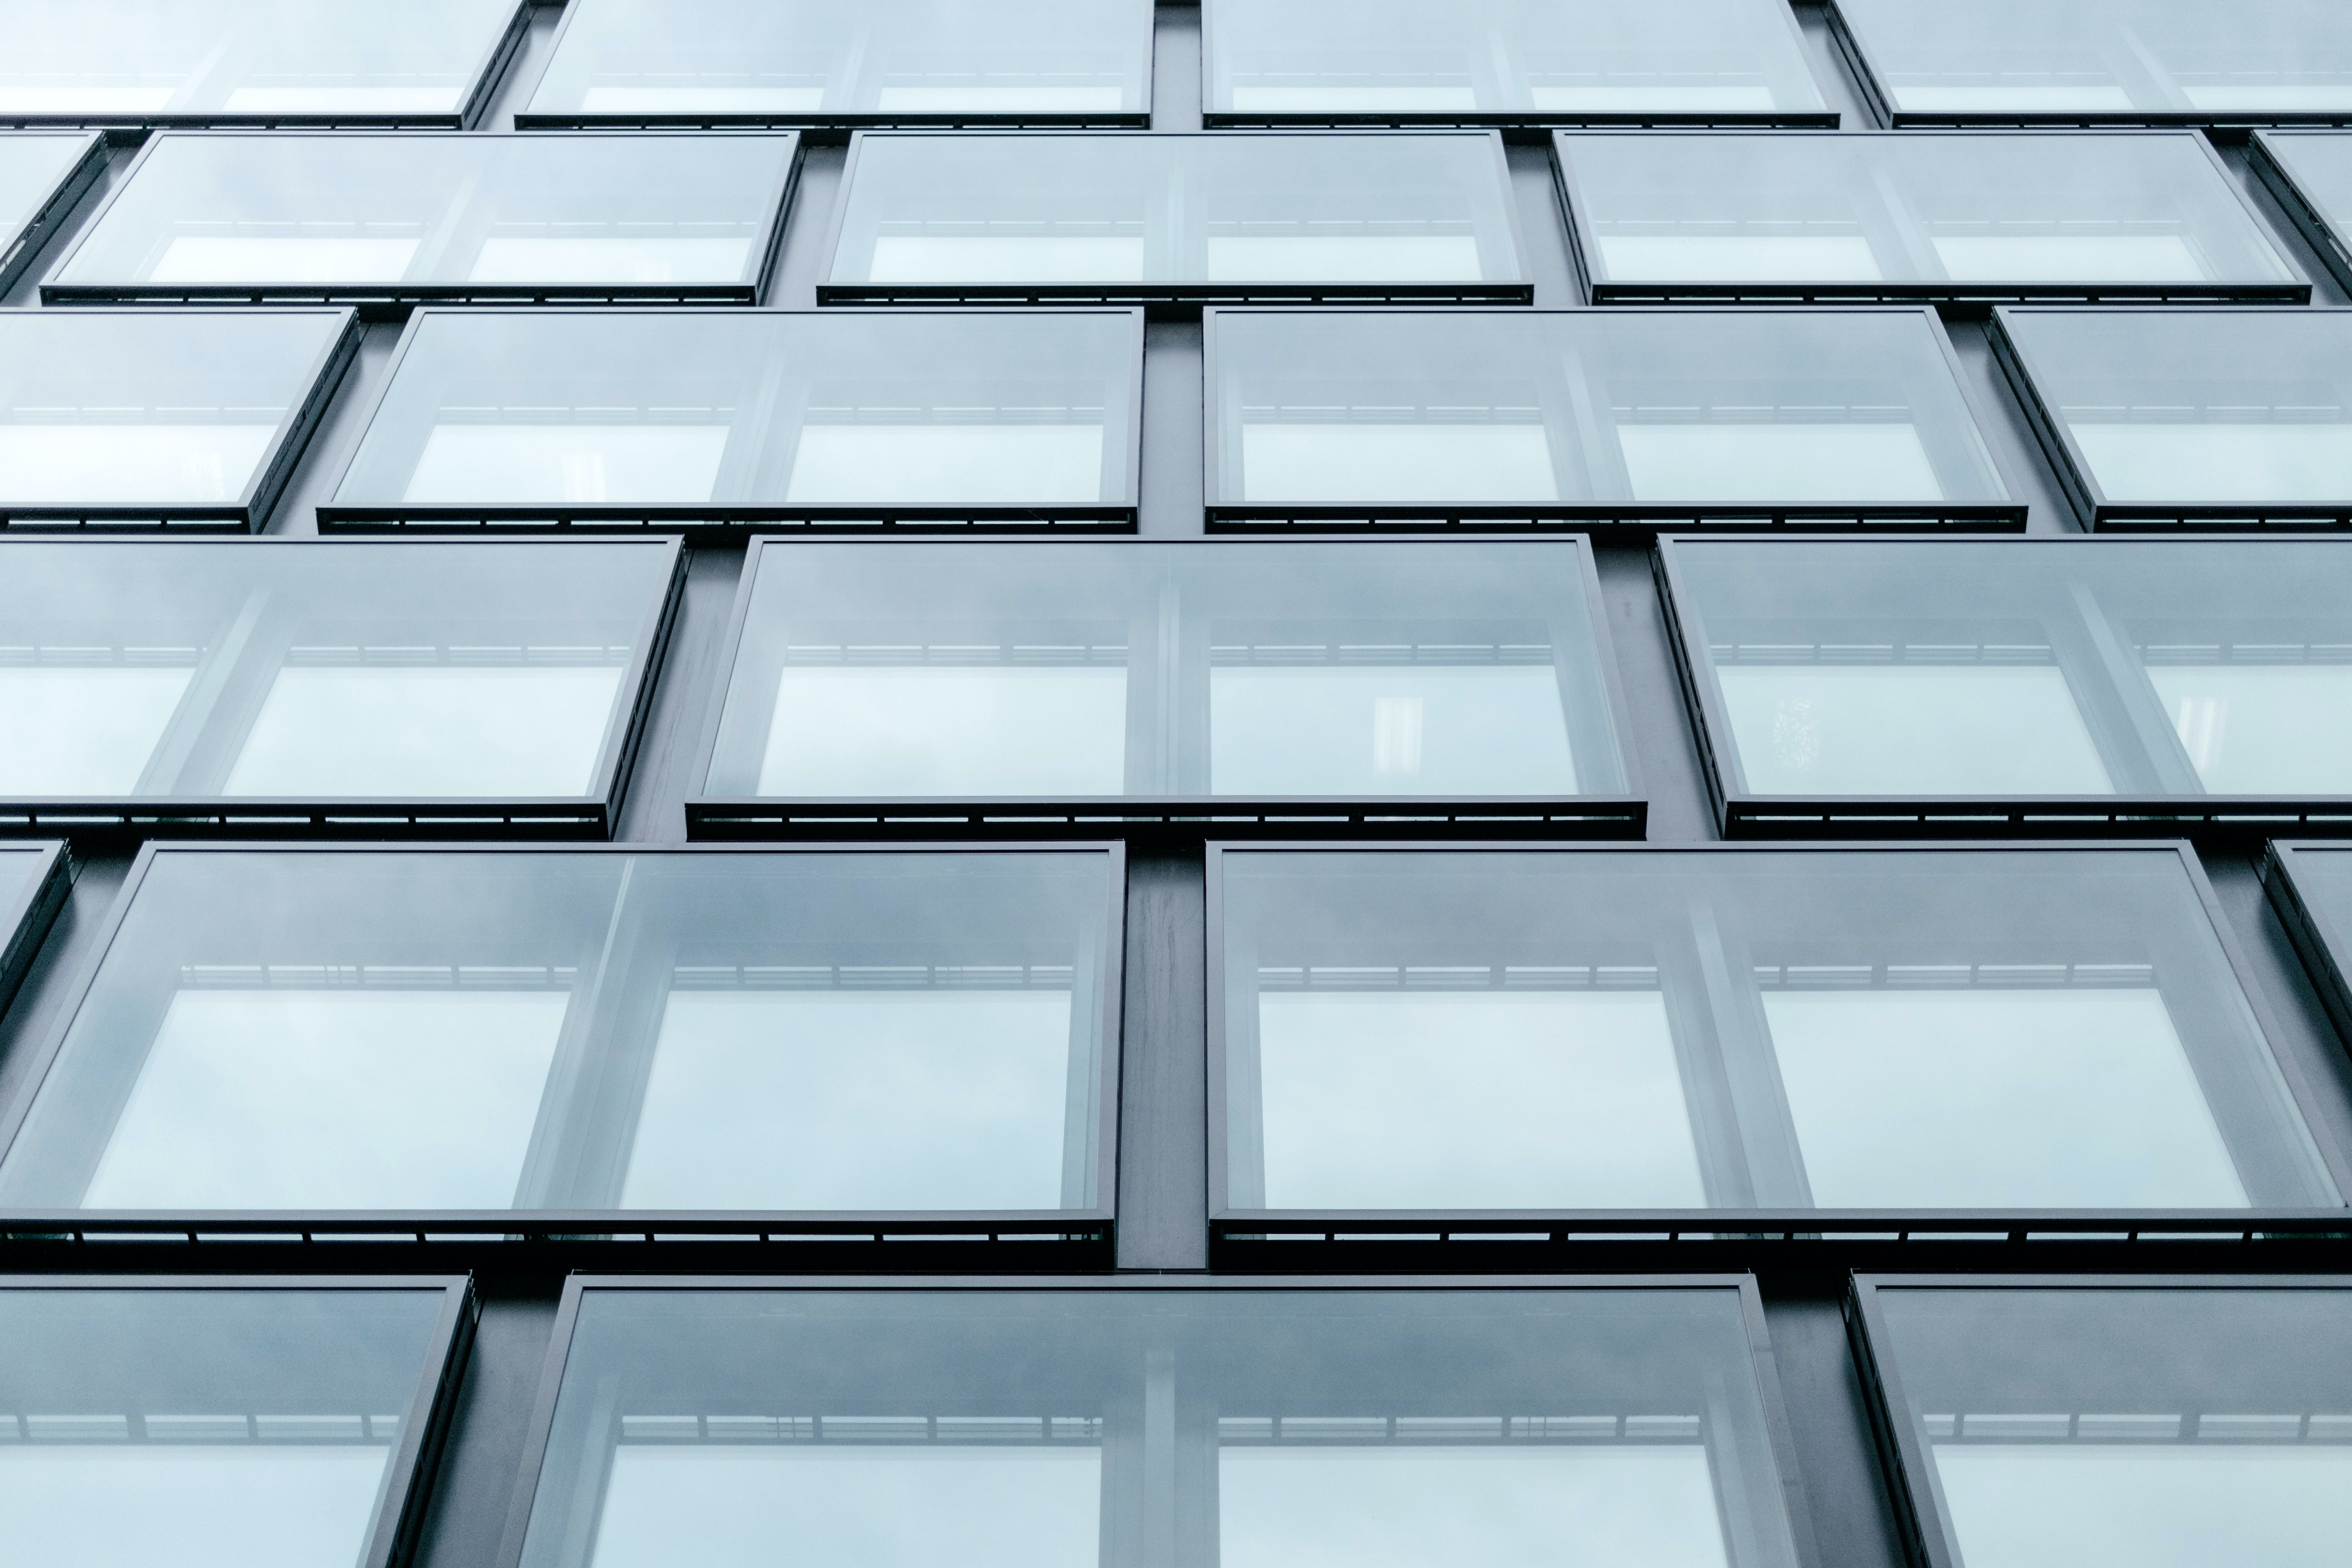 Large rectangular windows in the facade of an office building in Zürich